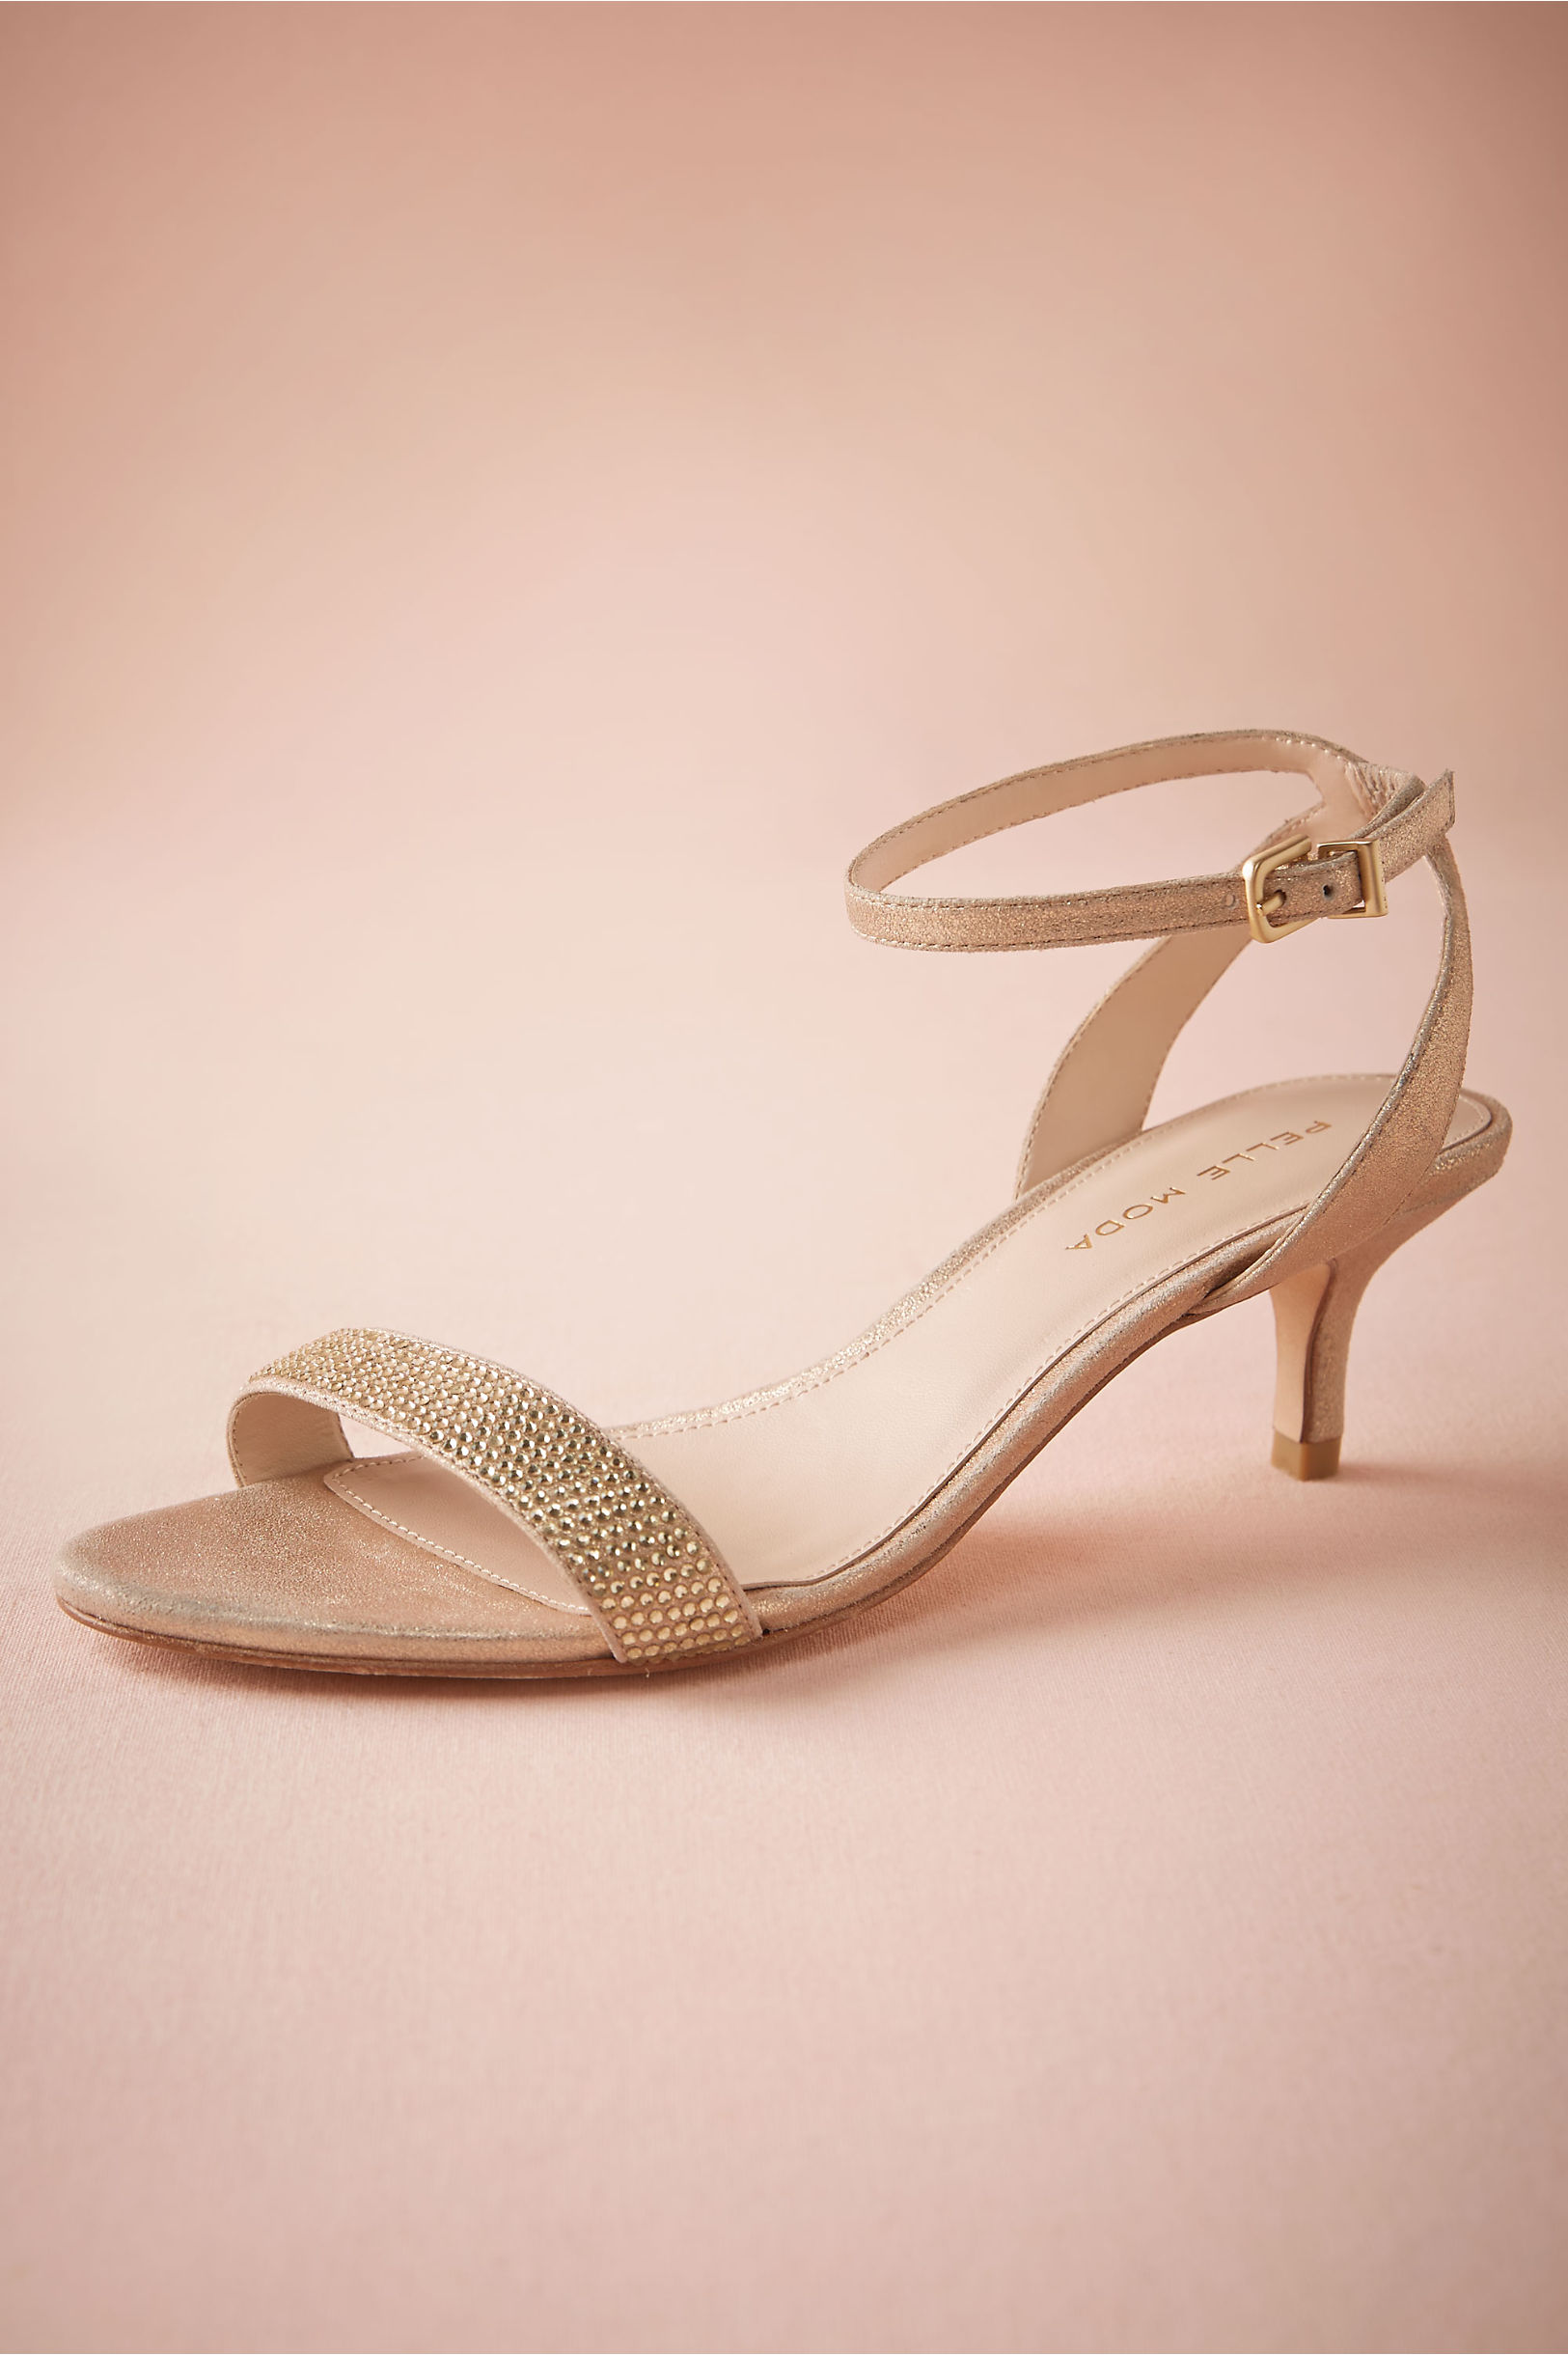 Fabia Kitten Heels in Sale | BHLDN